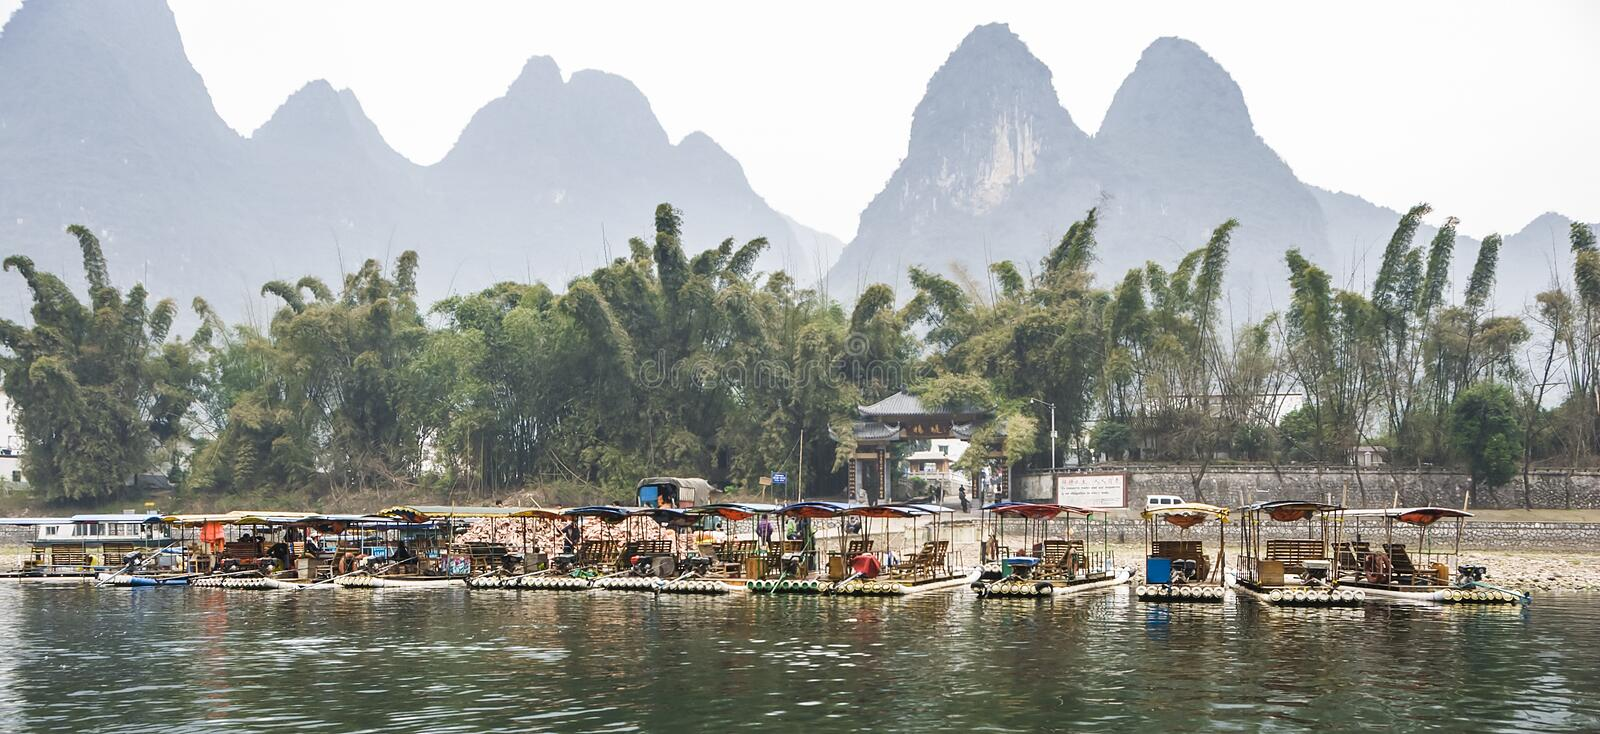 The Li River or Lijiang is a river in Guangxi Zhuang Autonomous Region, China. royalty free stock images